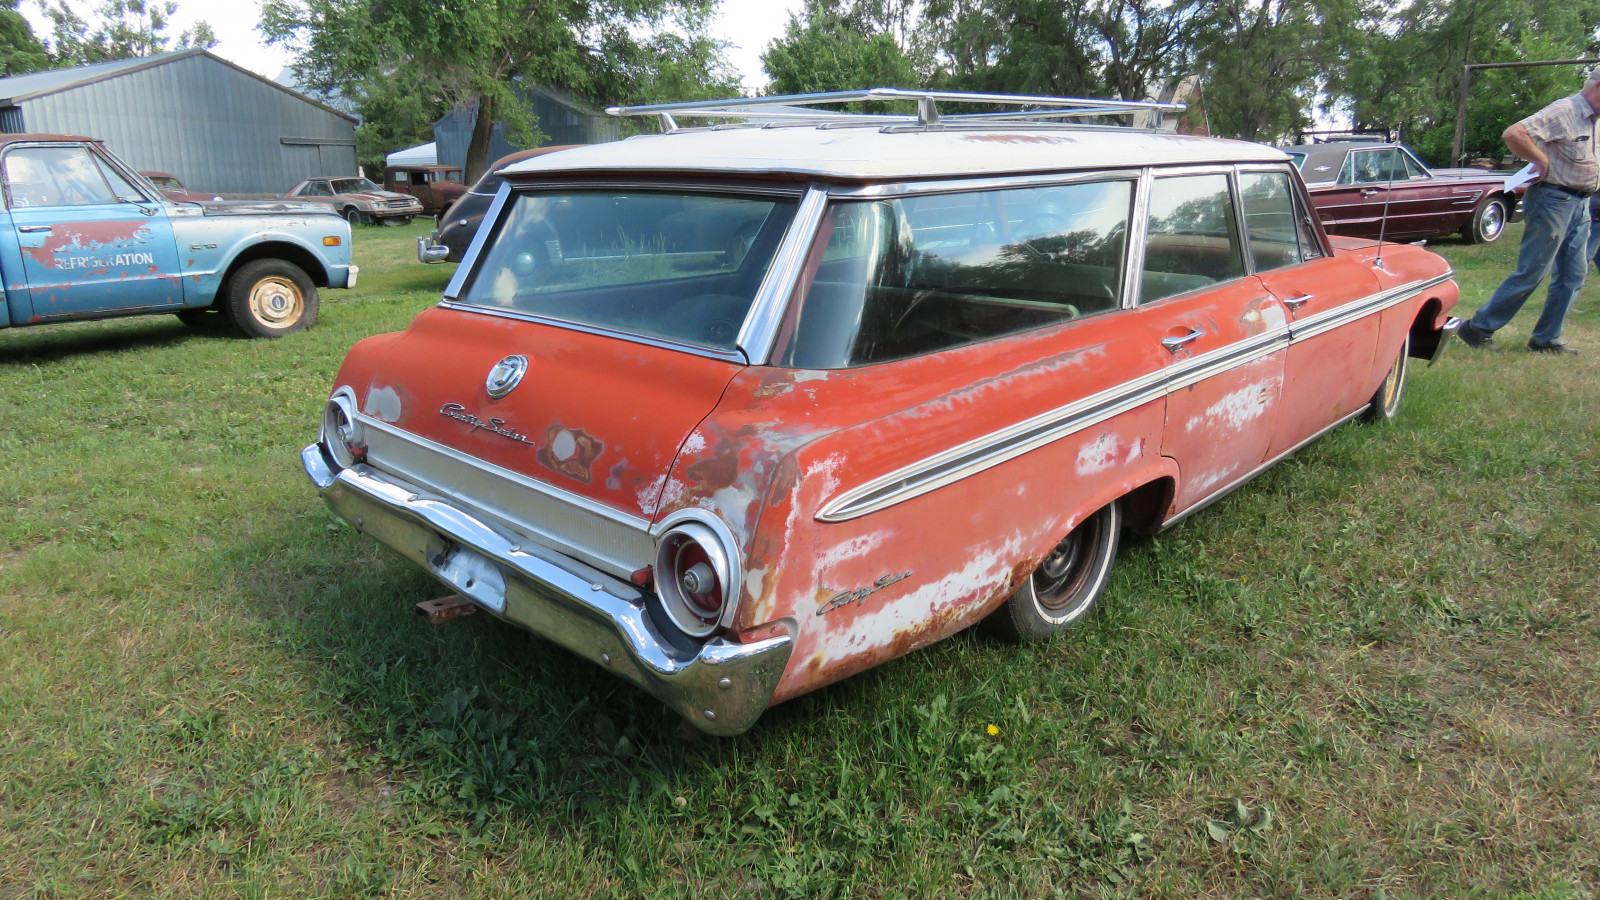 1962 Ford Country Sedan 4dr Wagon - Image 4